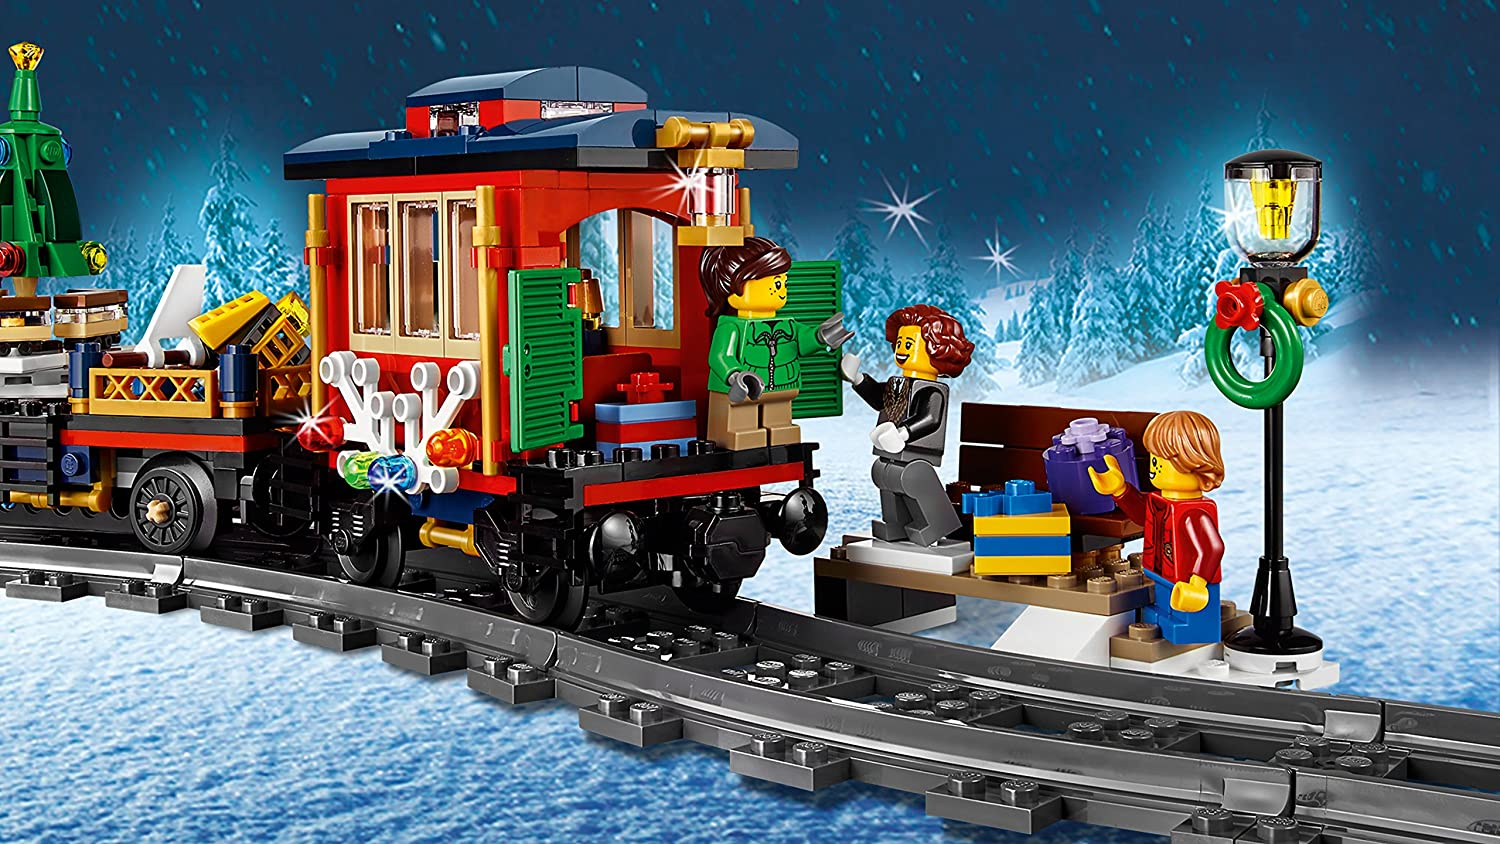 The Tracks That Go With The Lego 2017 Winter Holiday Train Measure More  Than 27 Centimeters When They Are Mounted.